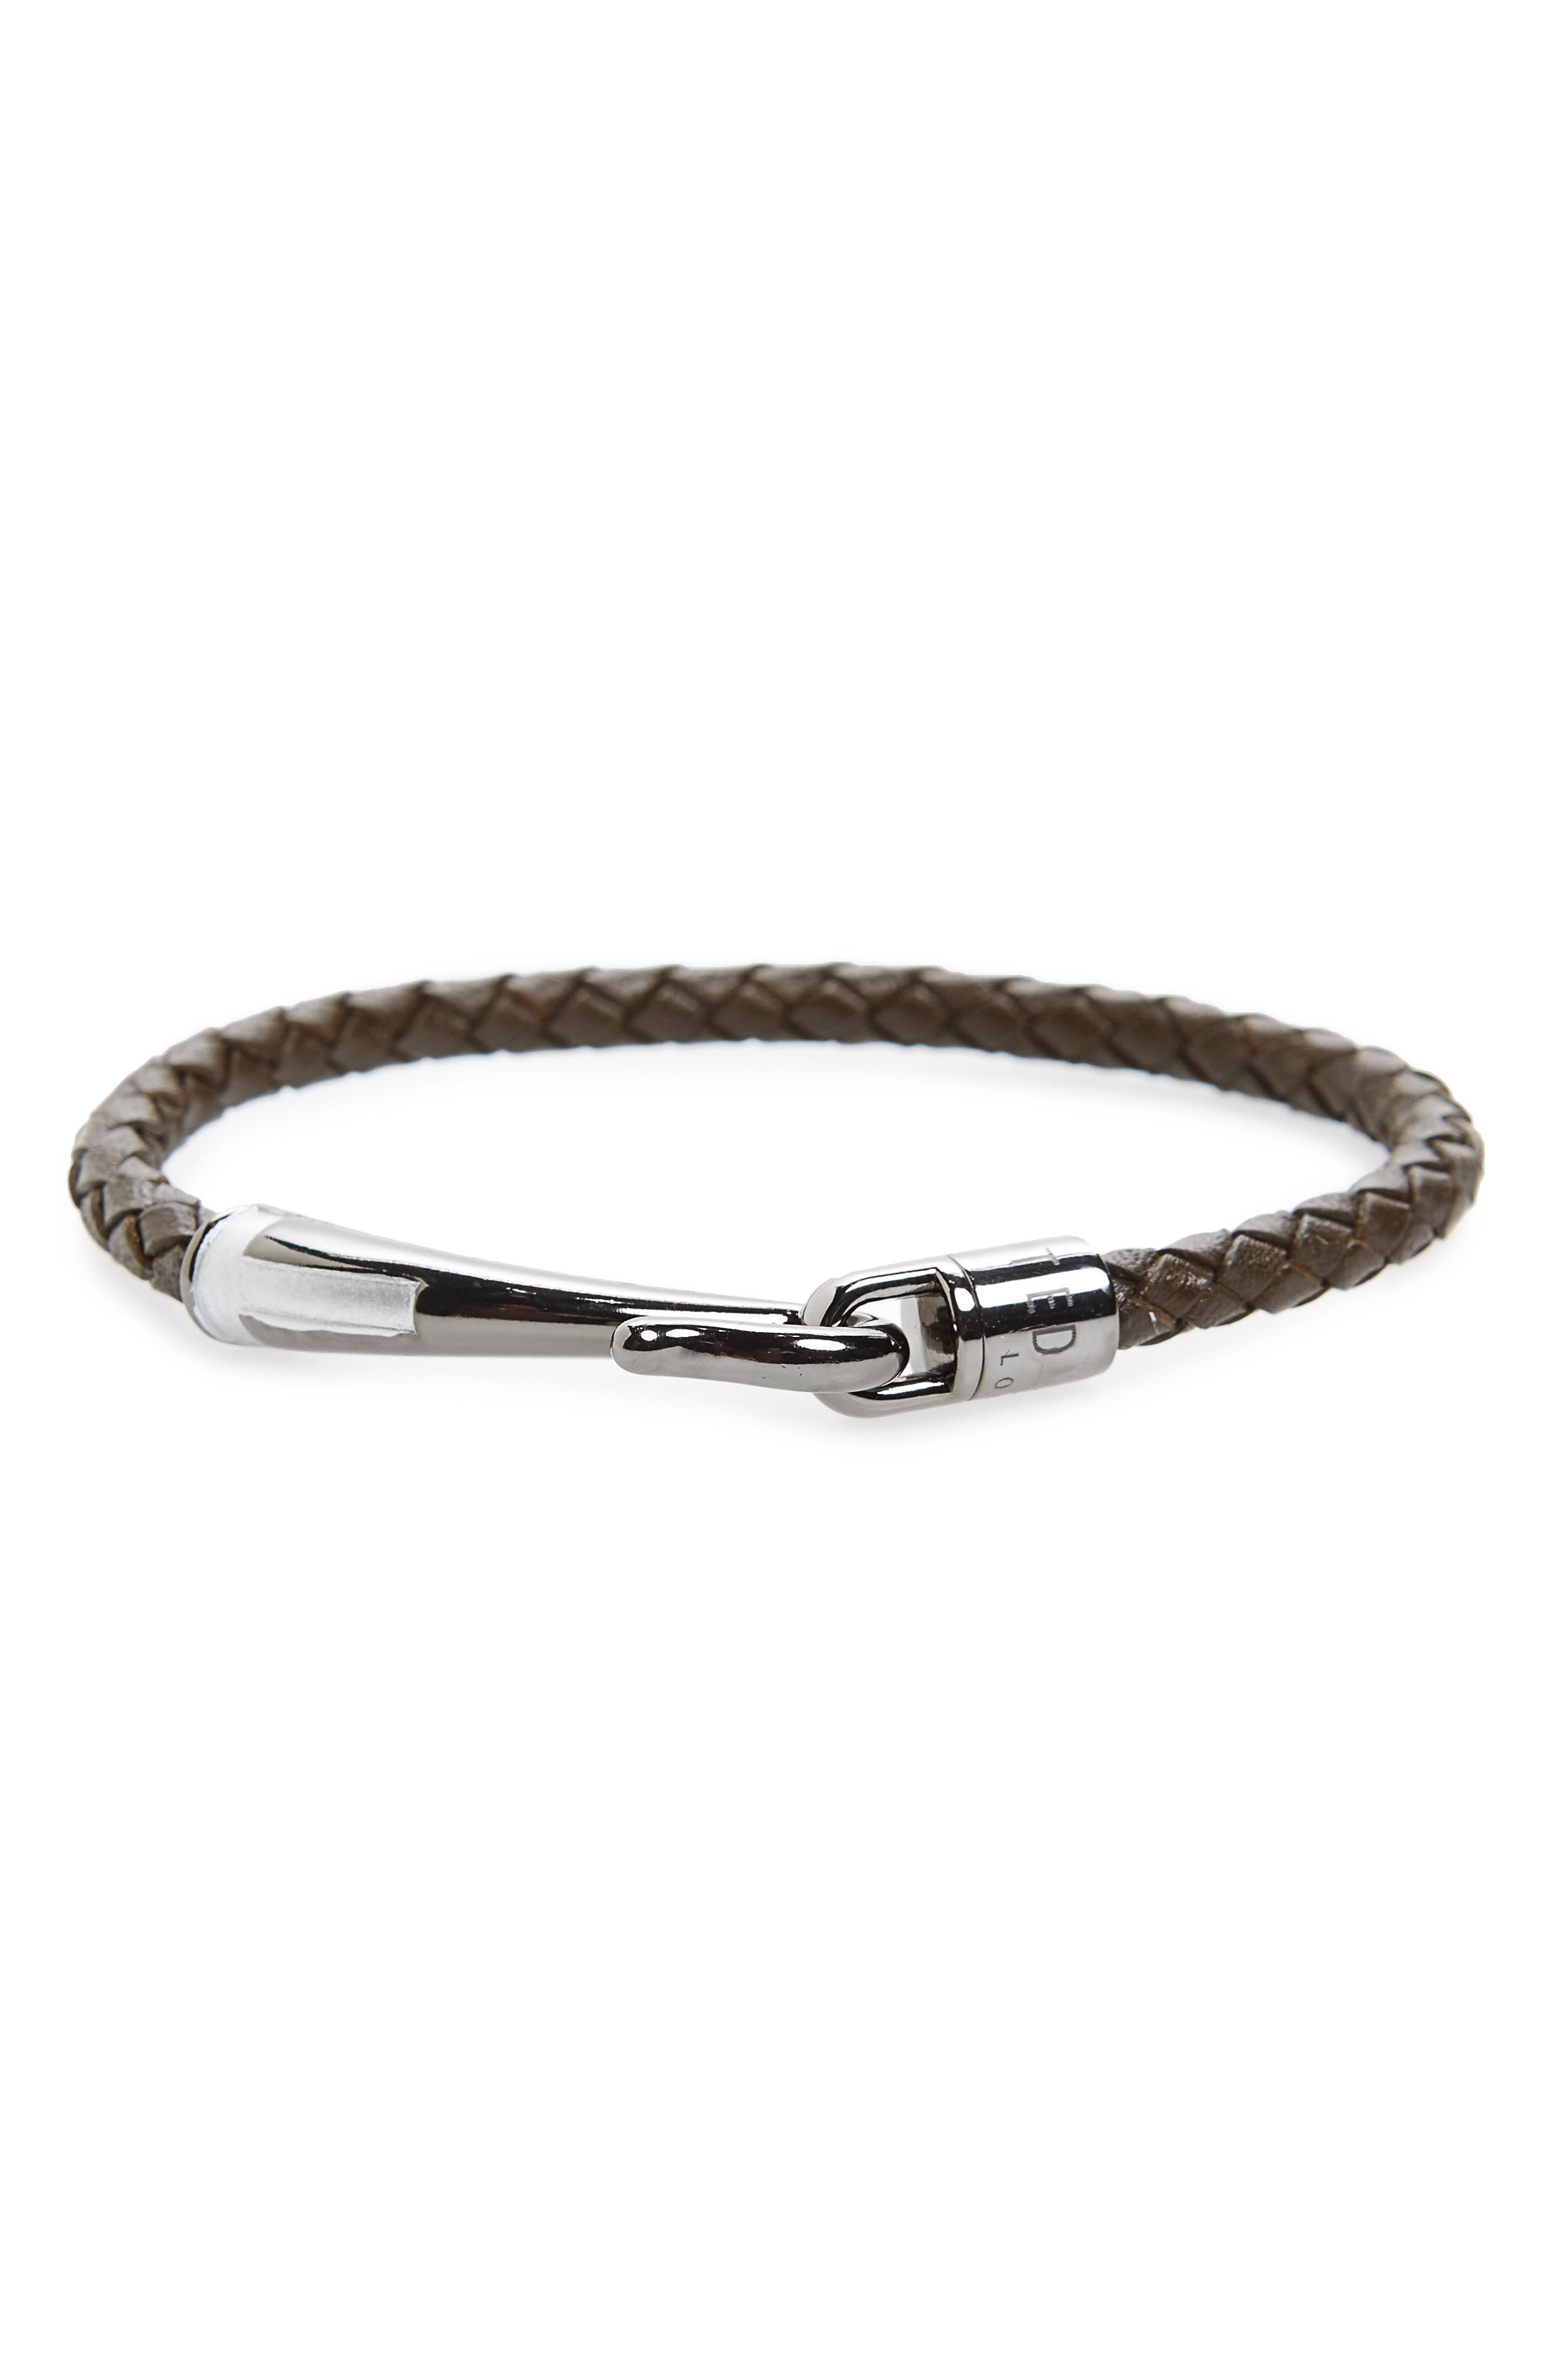 Chewer Braided Leather Bracelet,                             Main thumbnail 2, color,